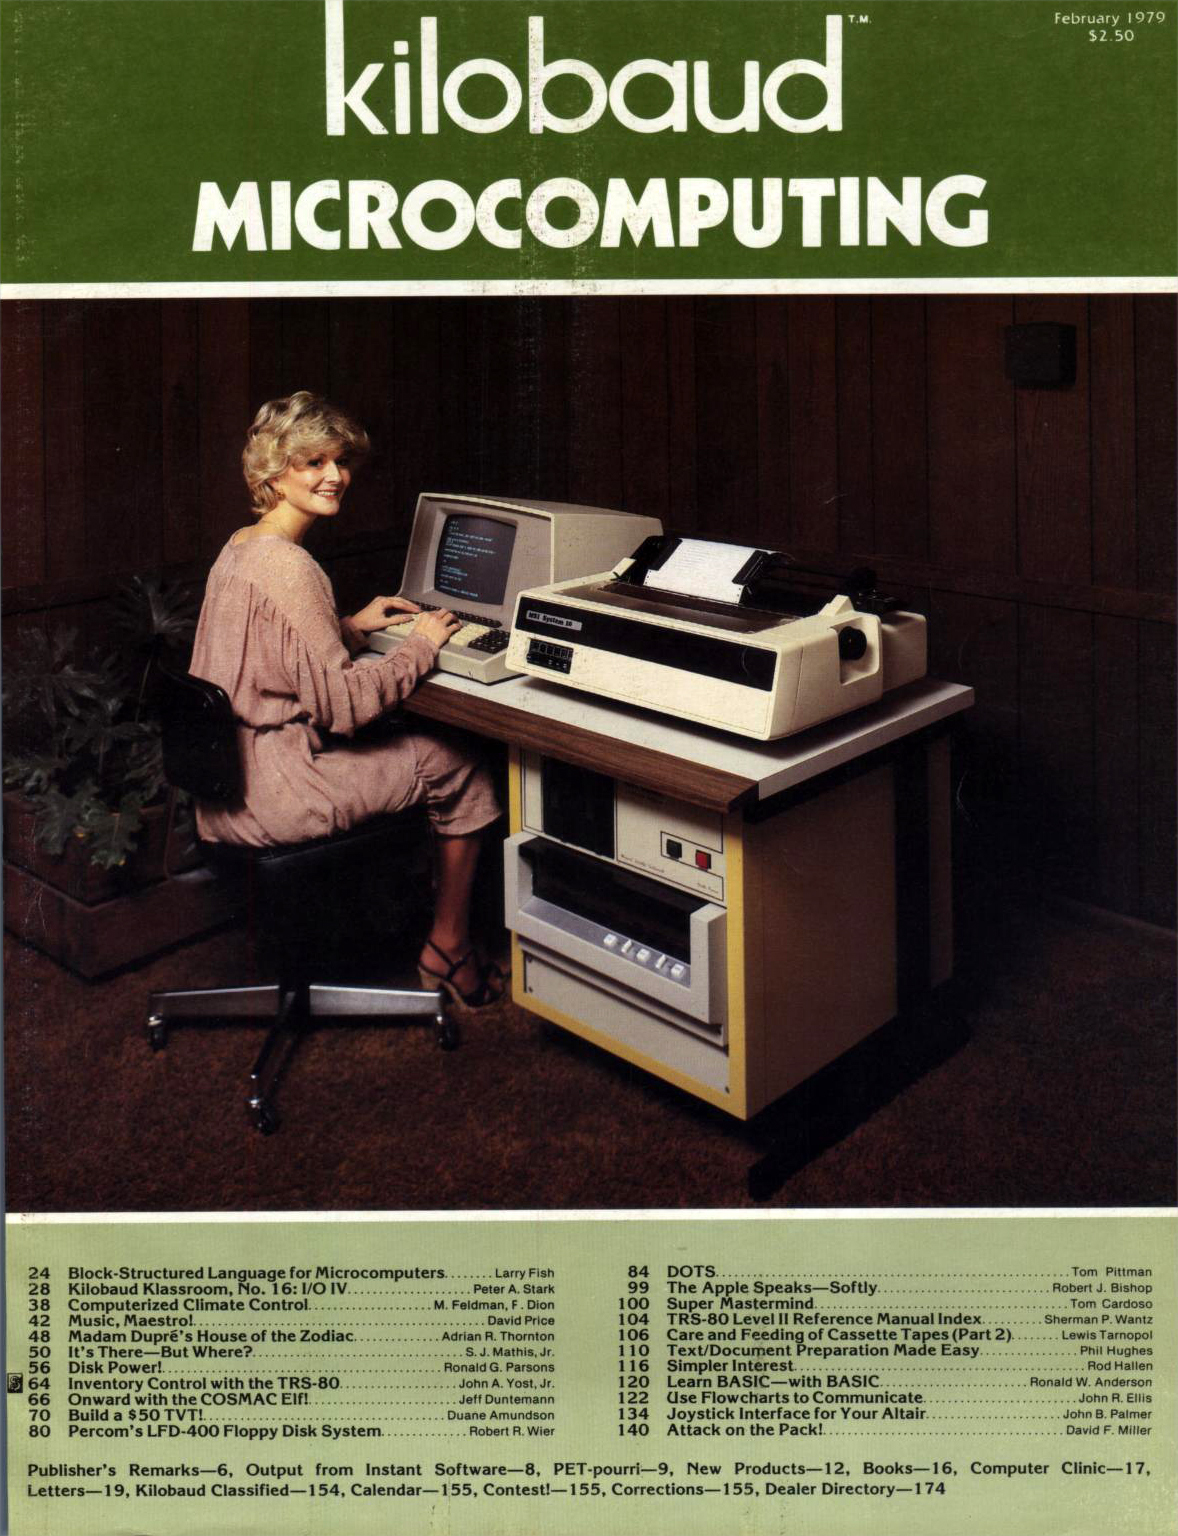 Kilobaud_Microcomputing_1979_February